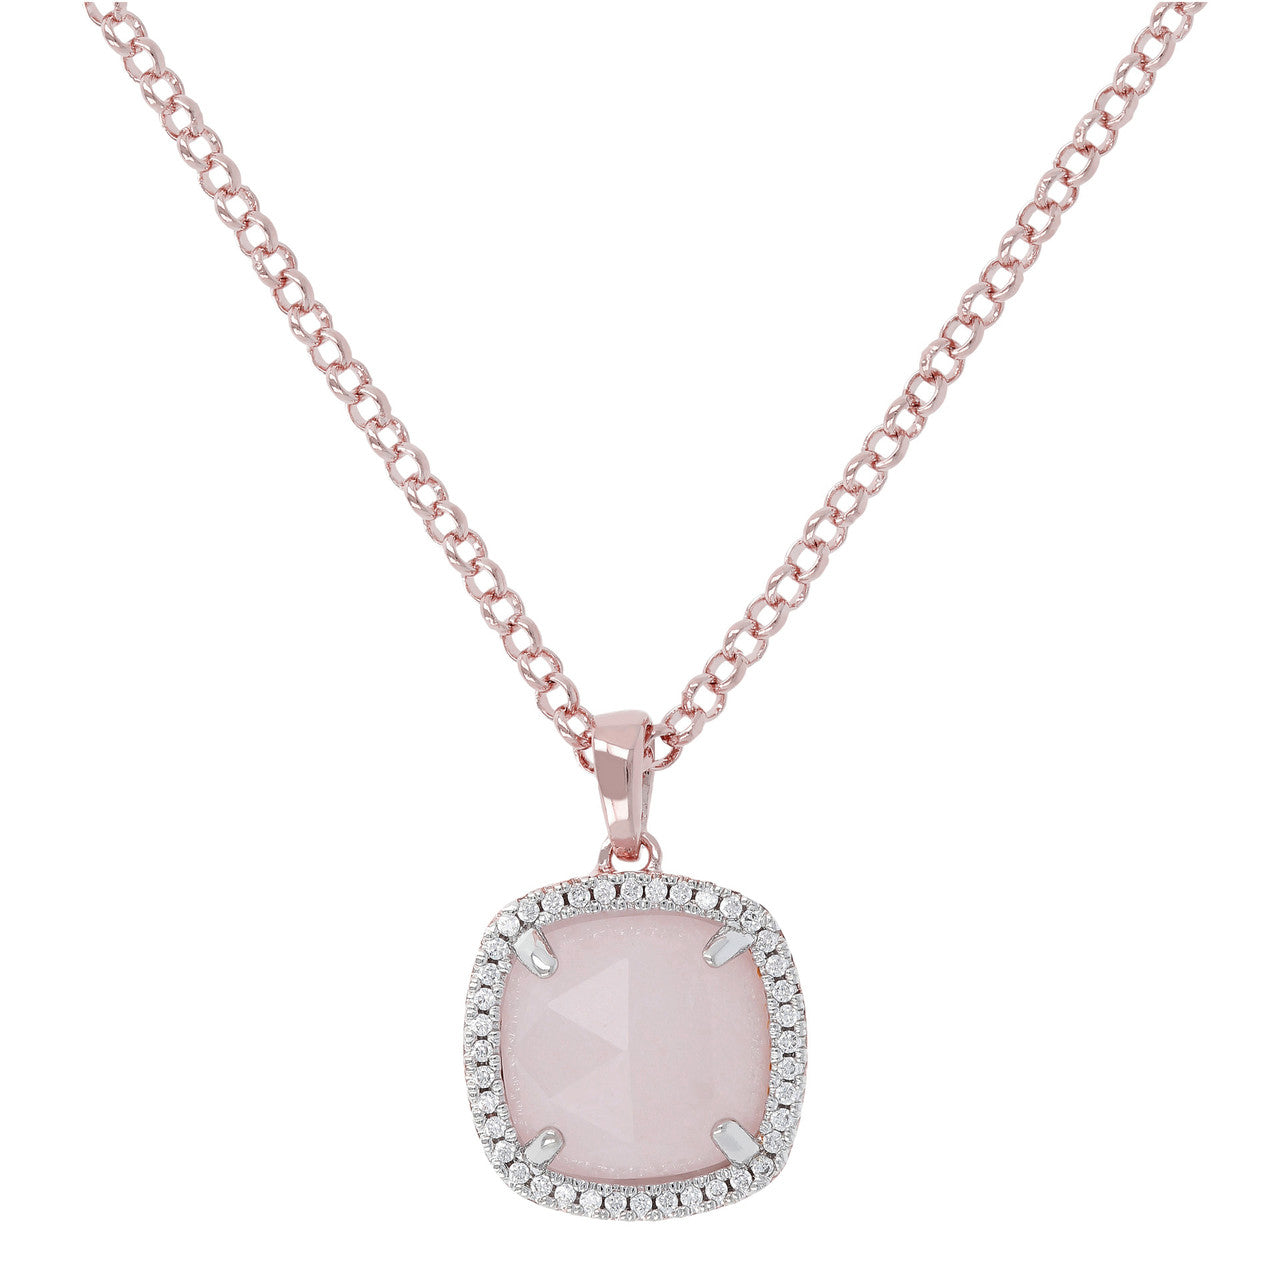 Quartz pendant cushion quartz pendant necklace rose quartz mozeypictures Image collections